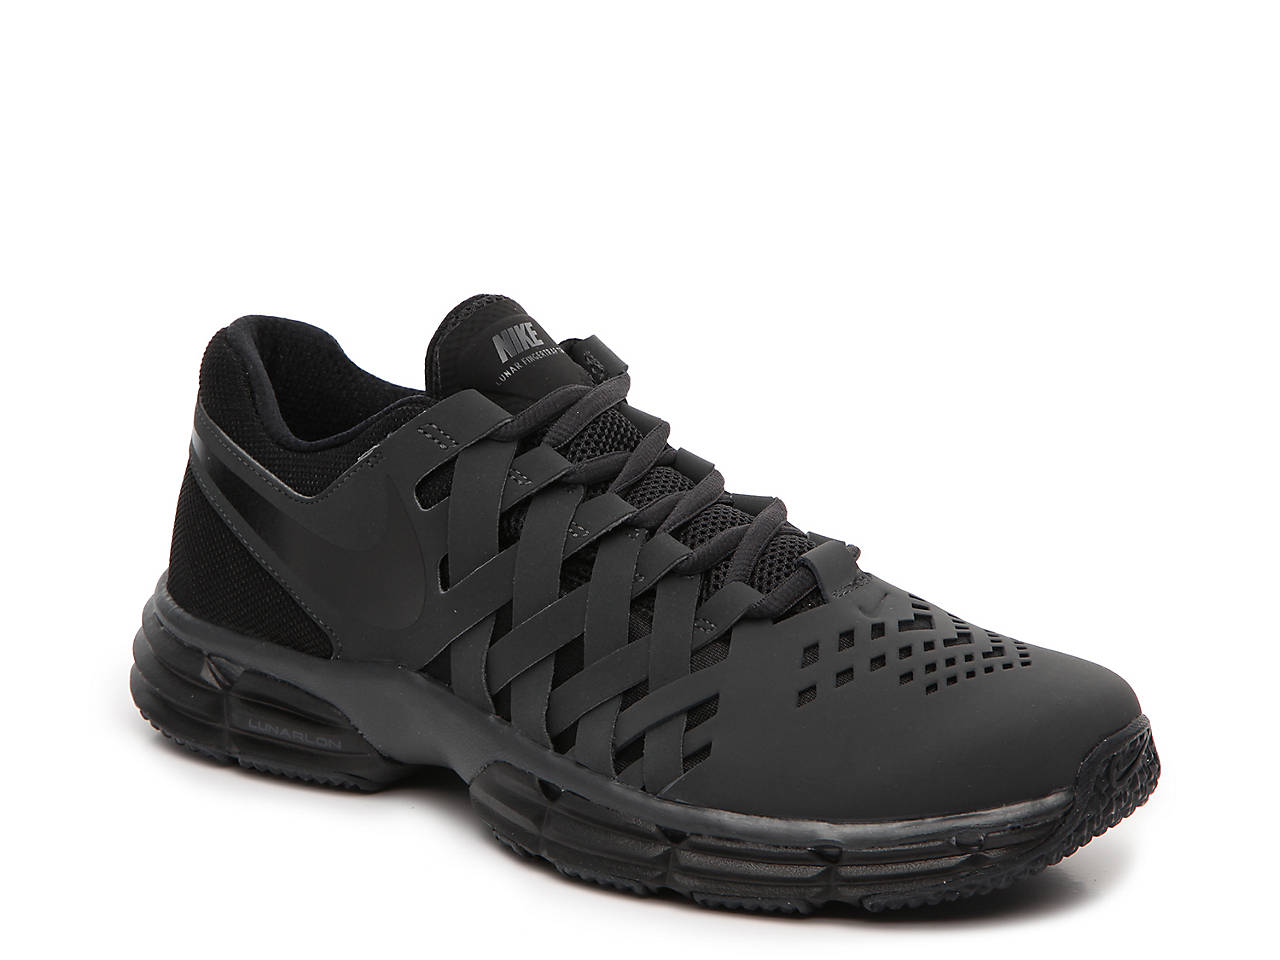 c97d2fe4105a Nike Lunar Fingertrap Training Shoe - Men s Men s Shoes